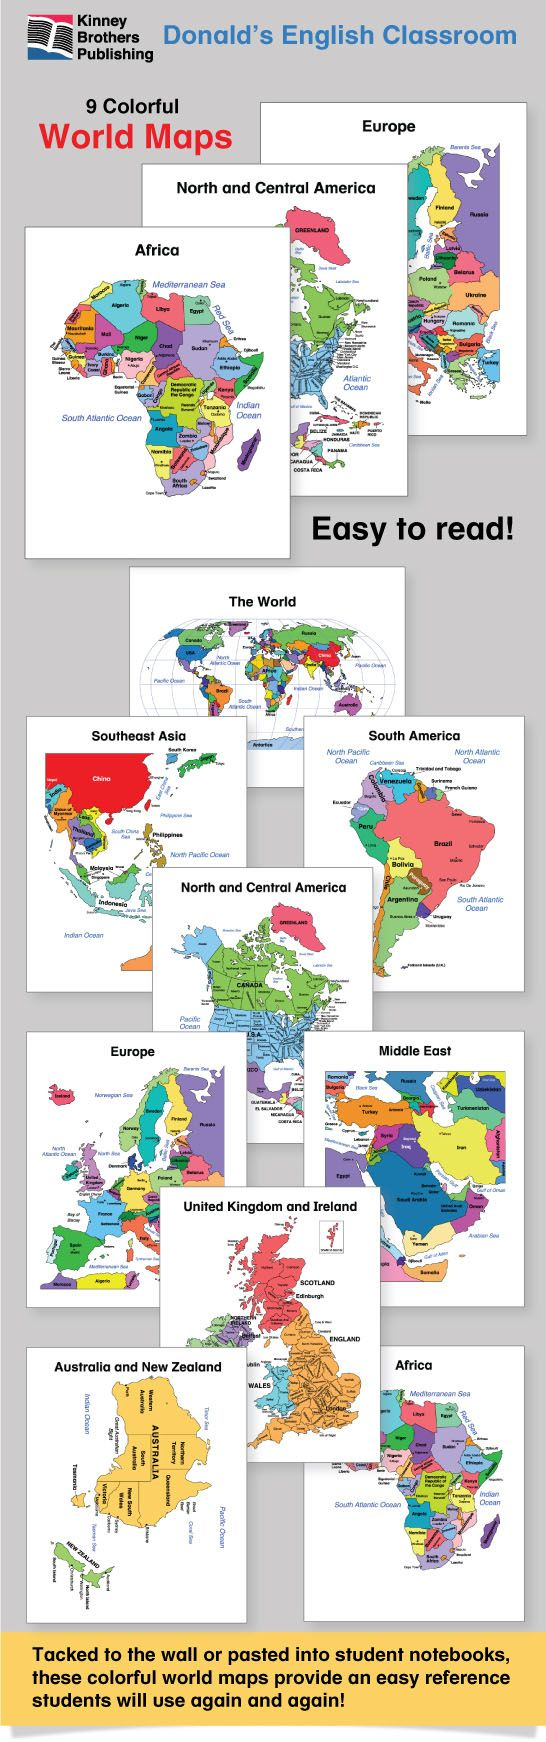 Esl world maps bestsellers students easy and walls easy to read inexpensive downloadable high resolution world maps great for hanging or adding to notebooks up to date on countries too gumiabroncs Gallery